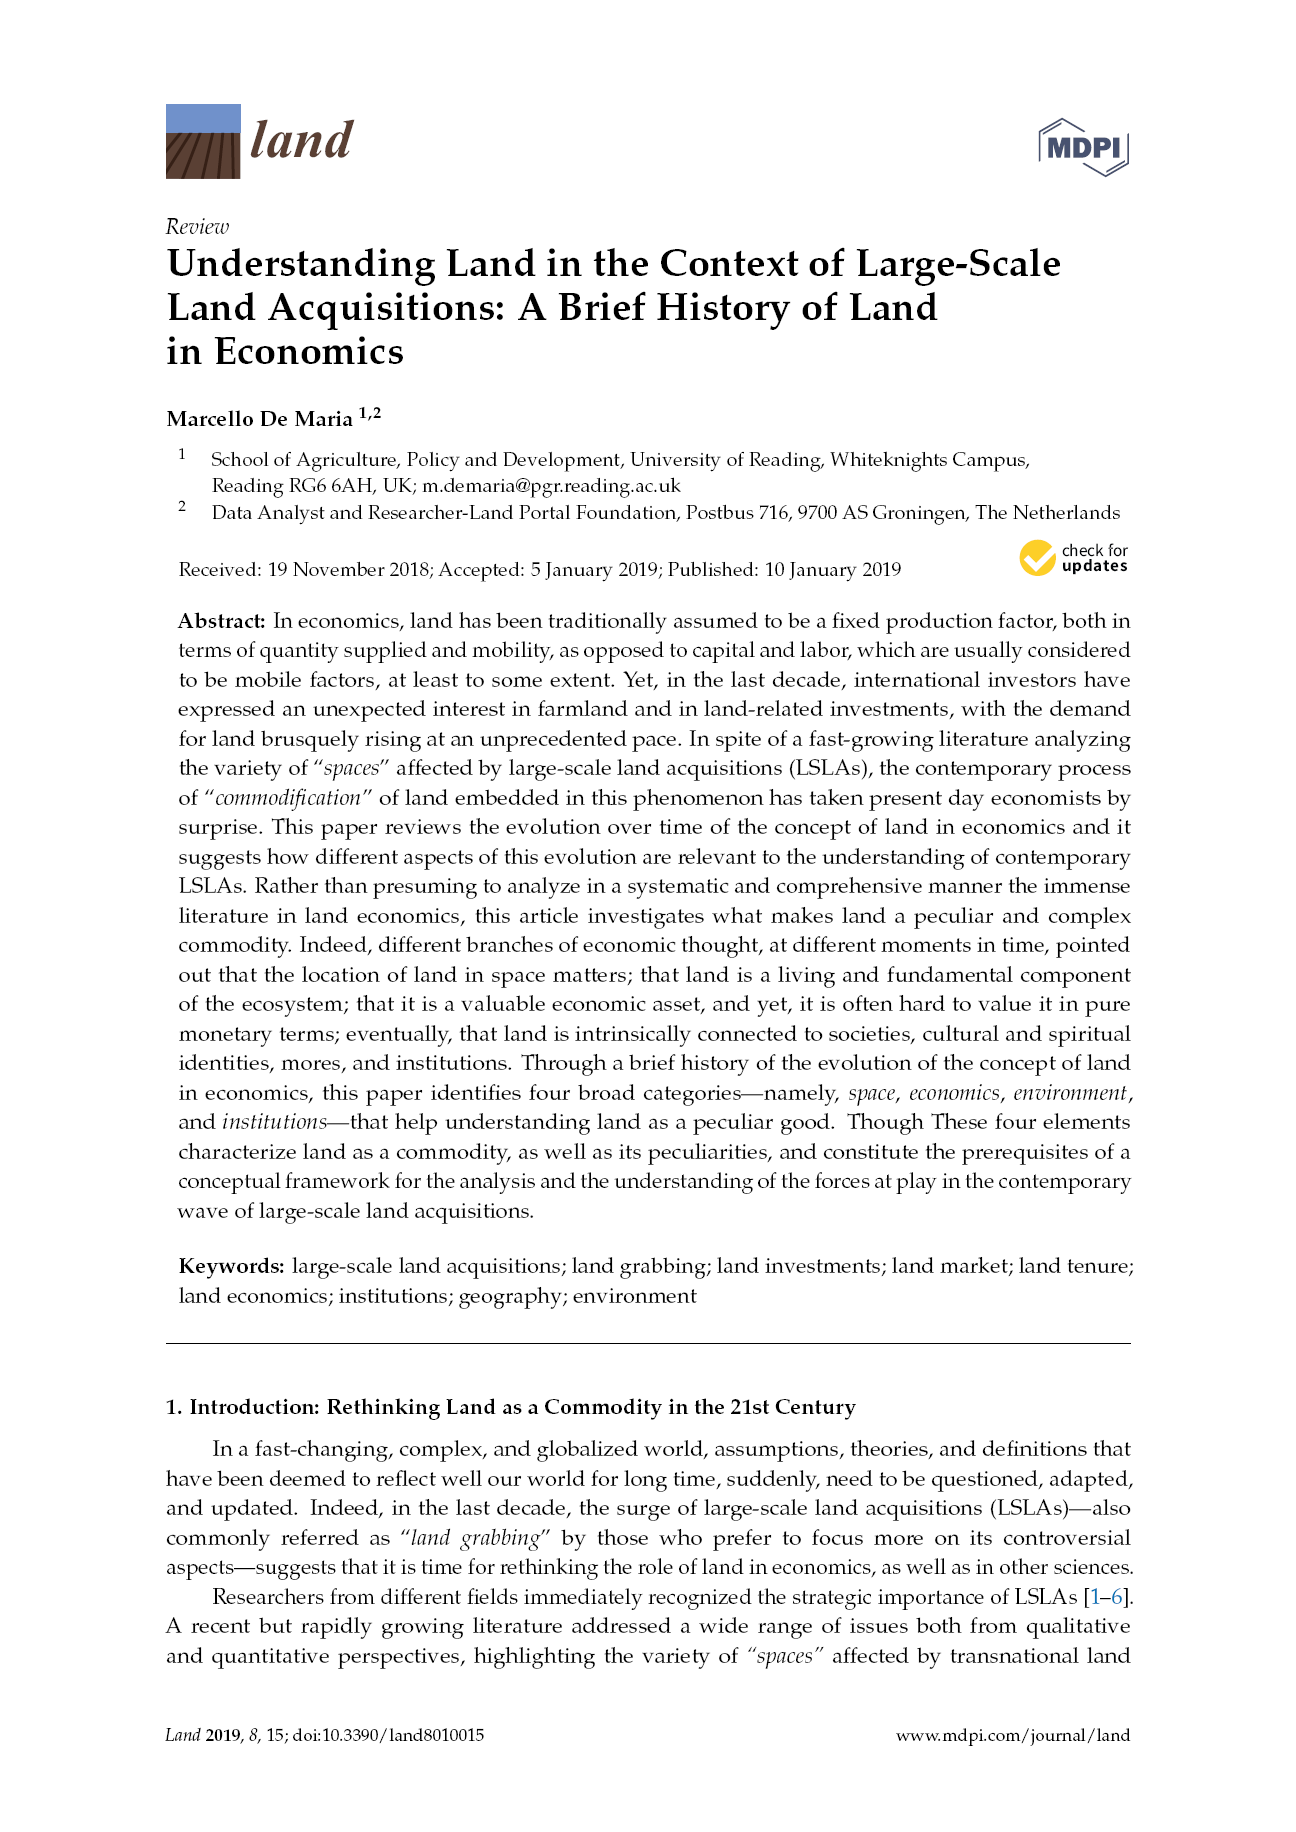 Understanding Land in the Context of Large-Scale Land Acquisitions: A Brief History of Land in Economics